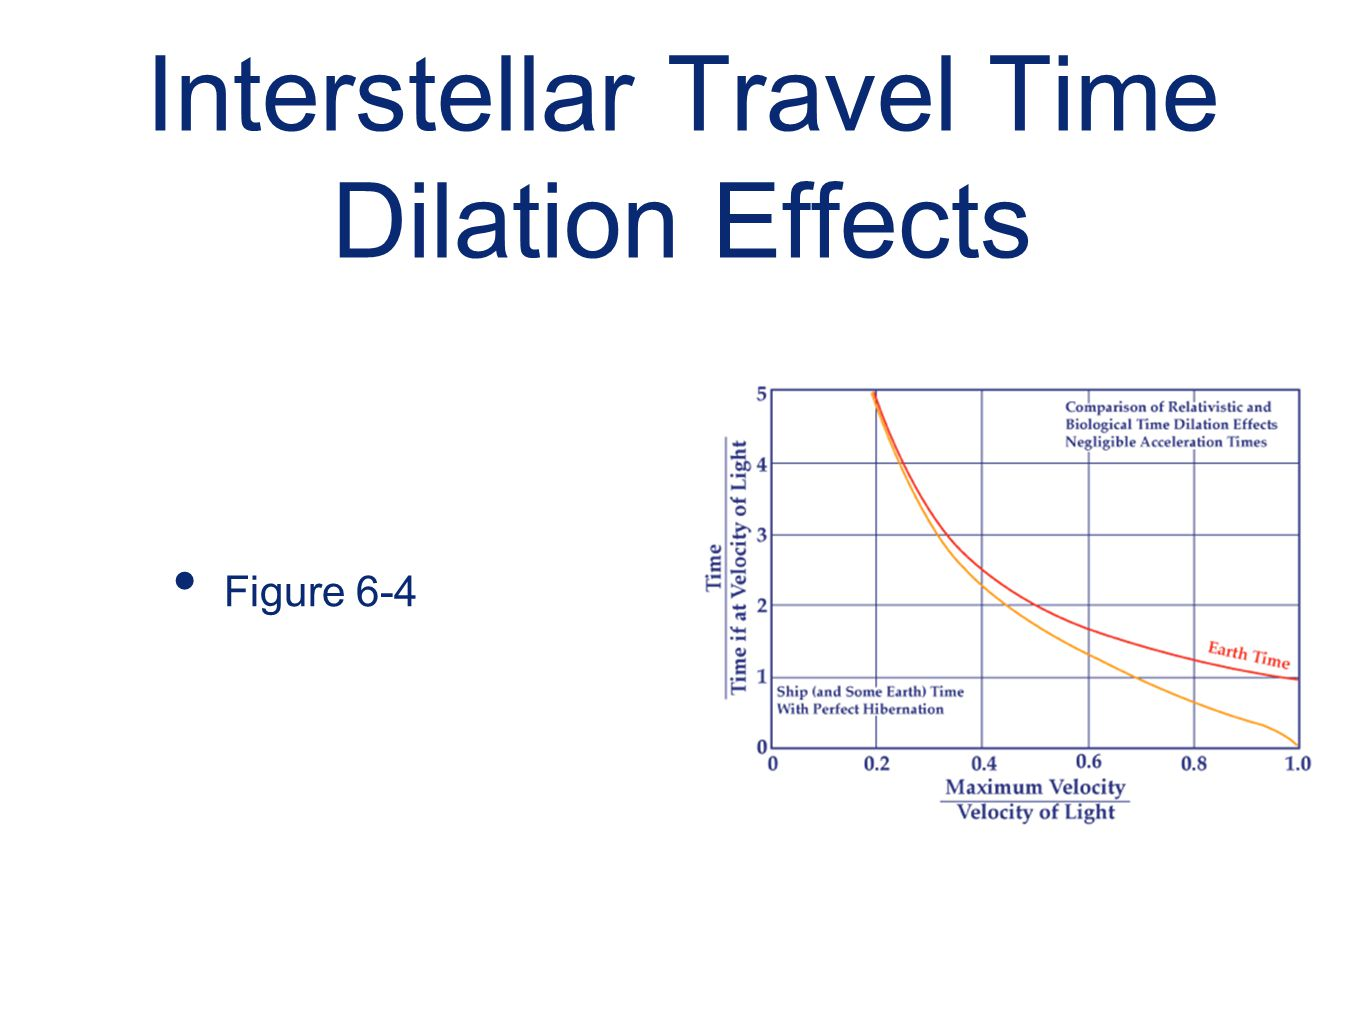 Interstellar Travel Time Dilation Effects Figure 6-4